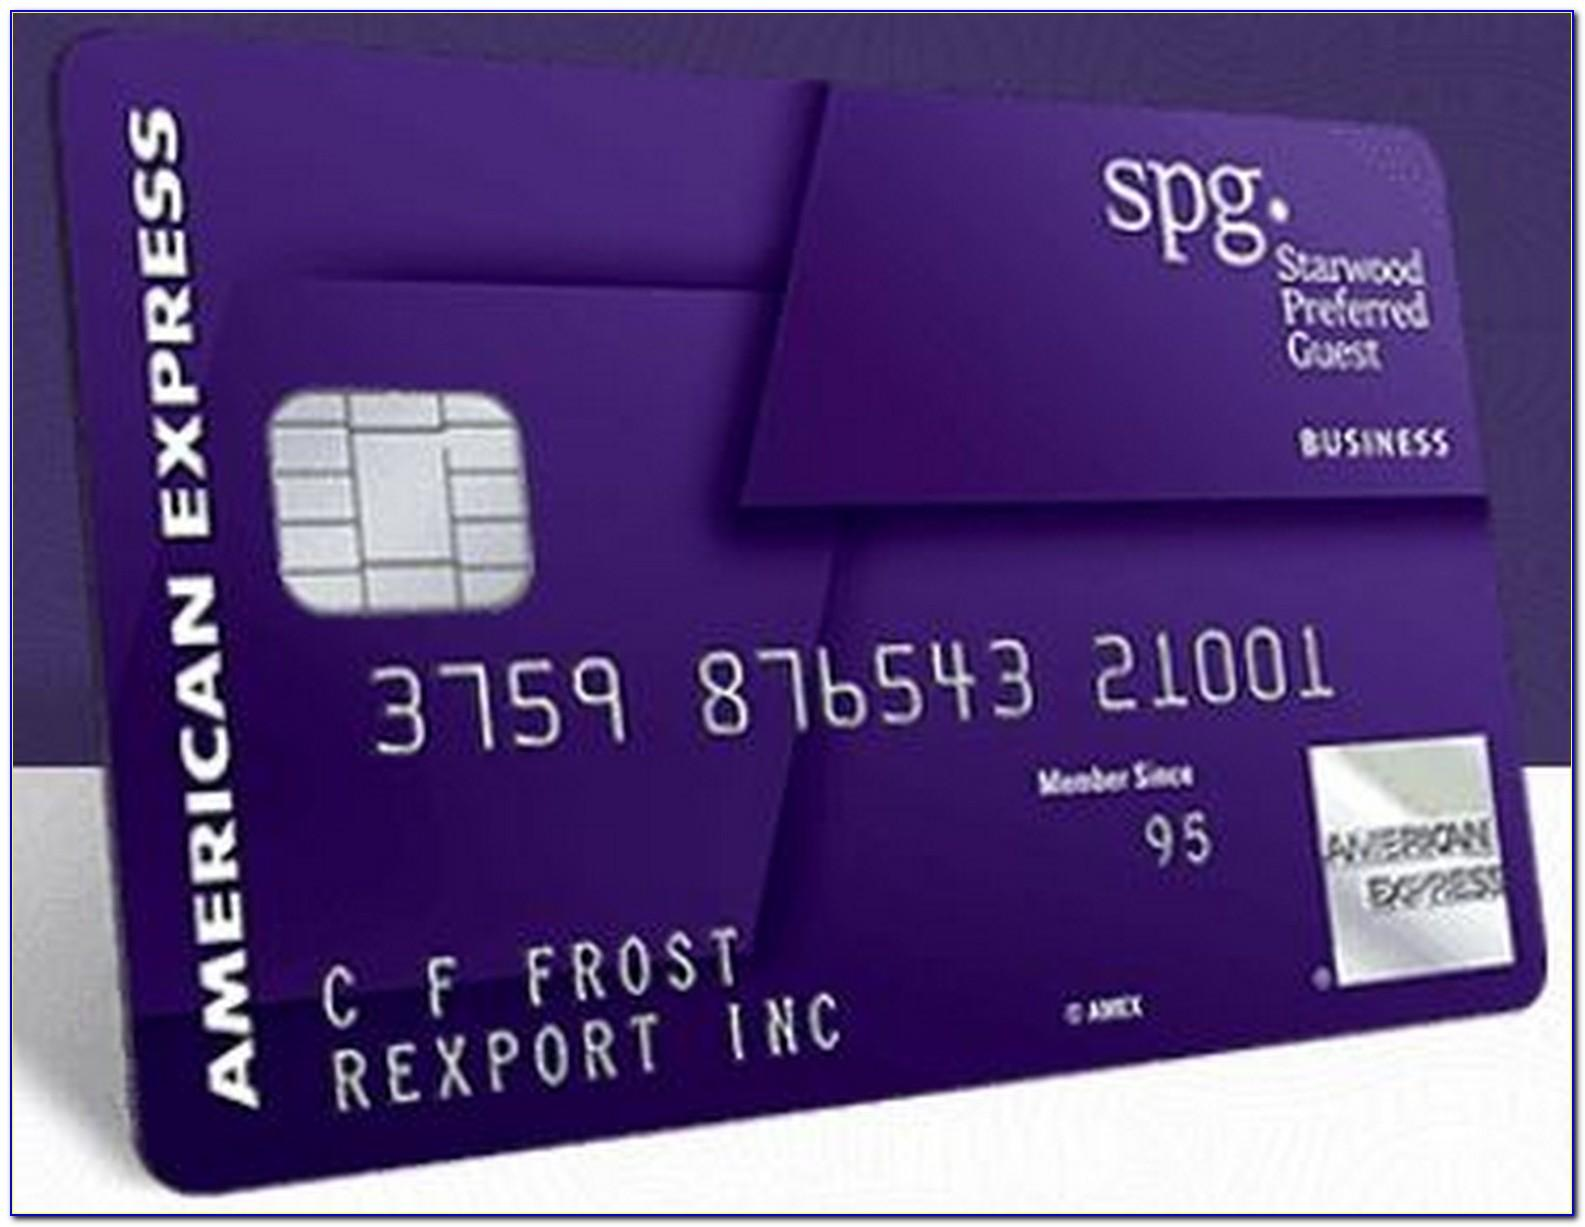 Amex Spg Business Credit Card